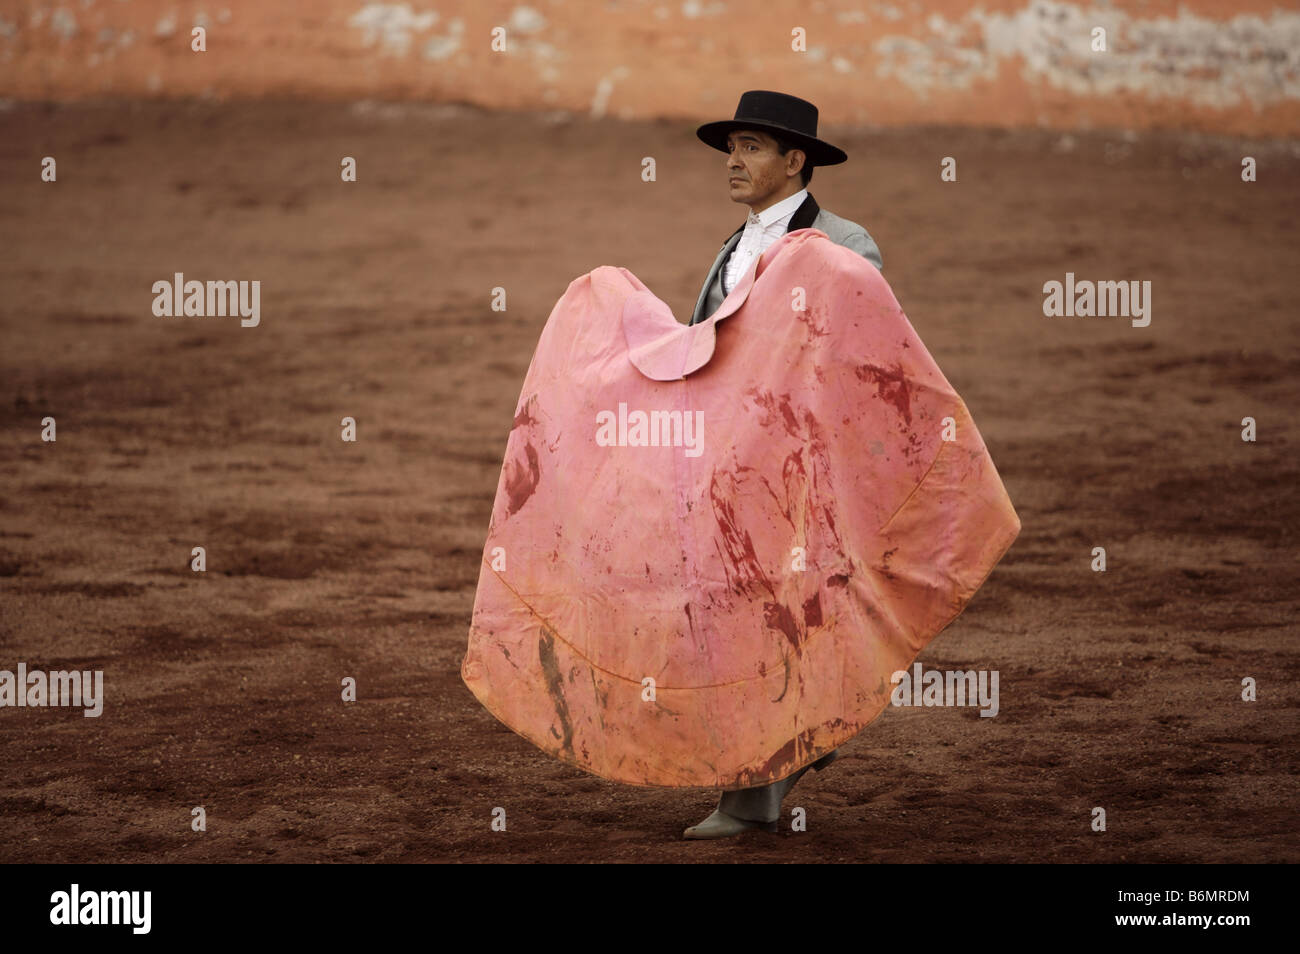 eccc1206993 A bullfighter holds a cape splattered with blood as he waits for a bull to  charge